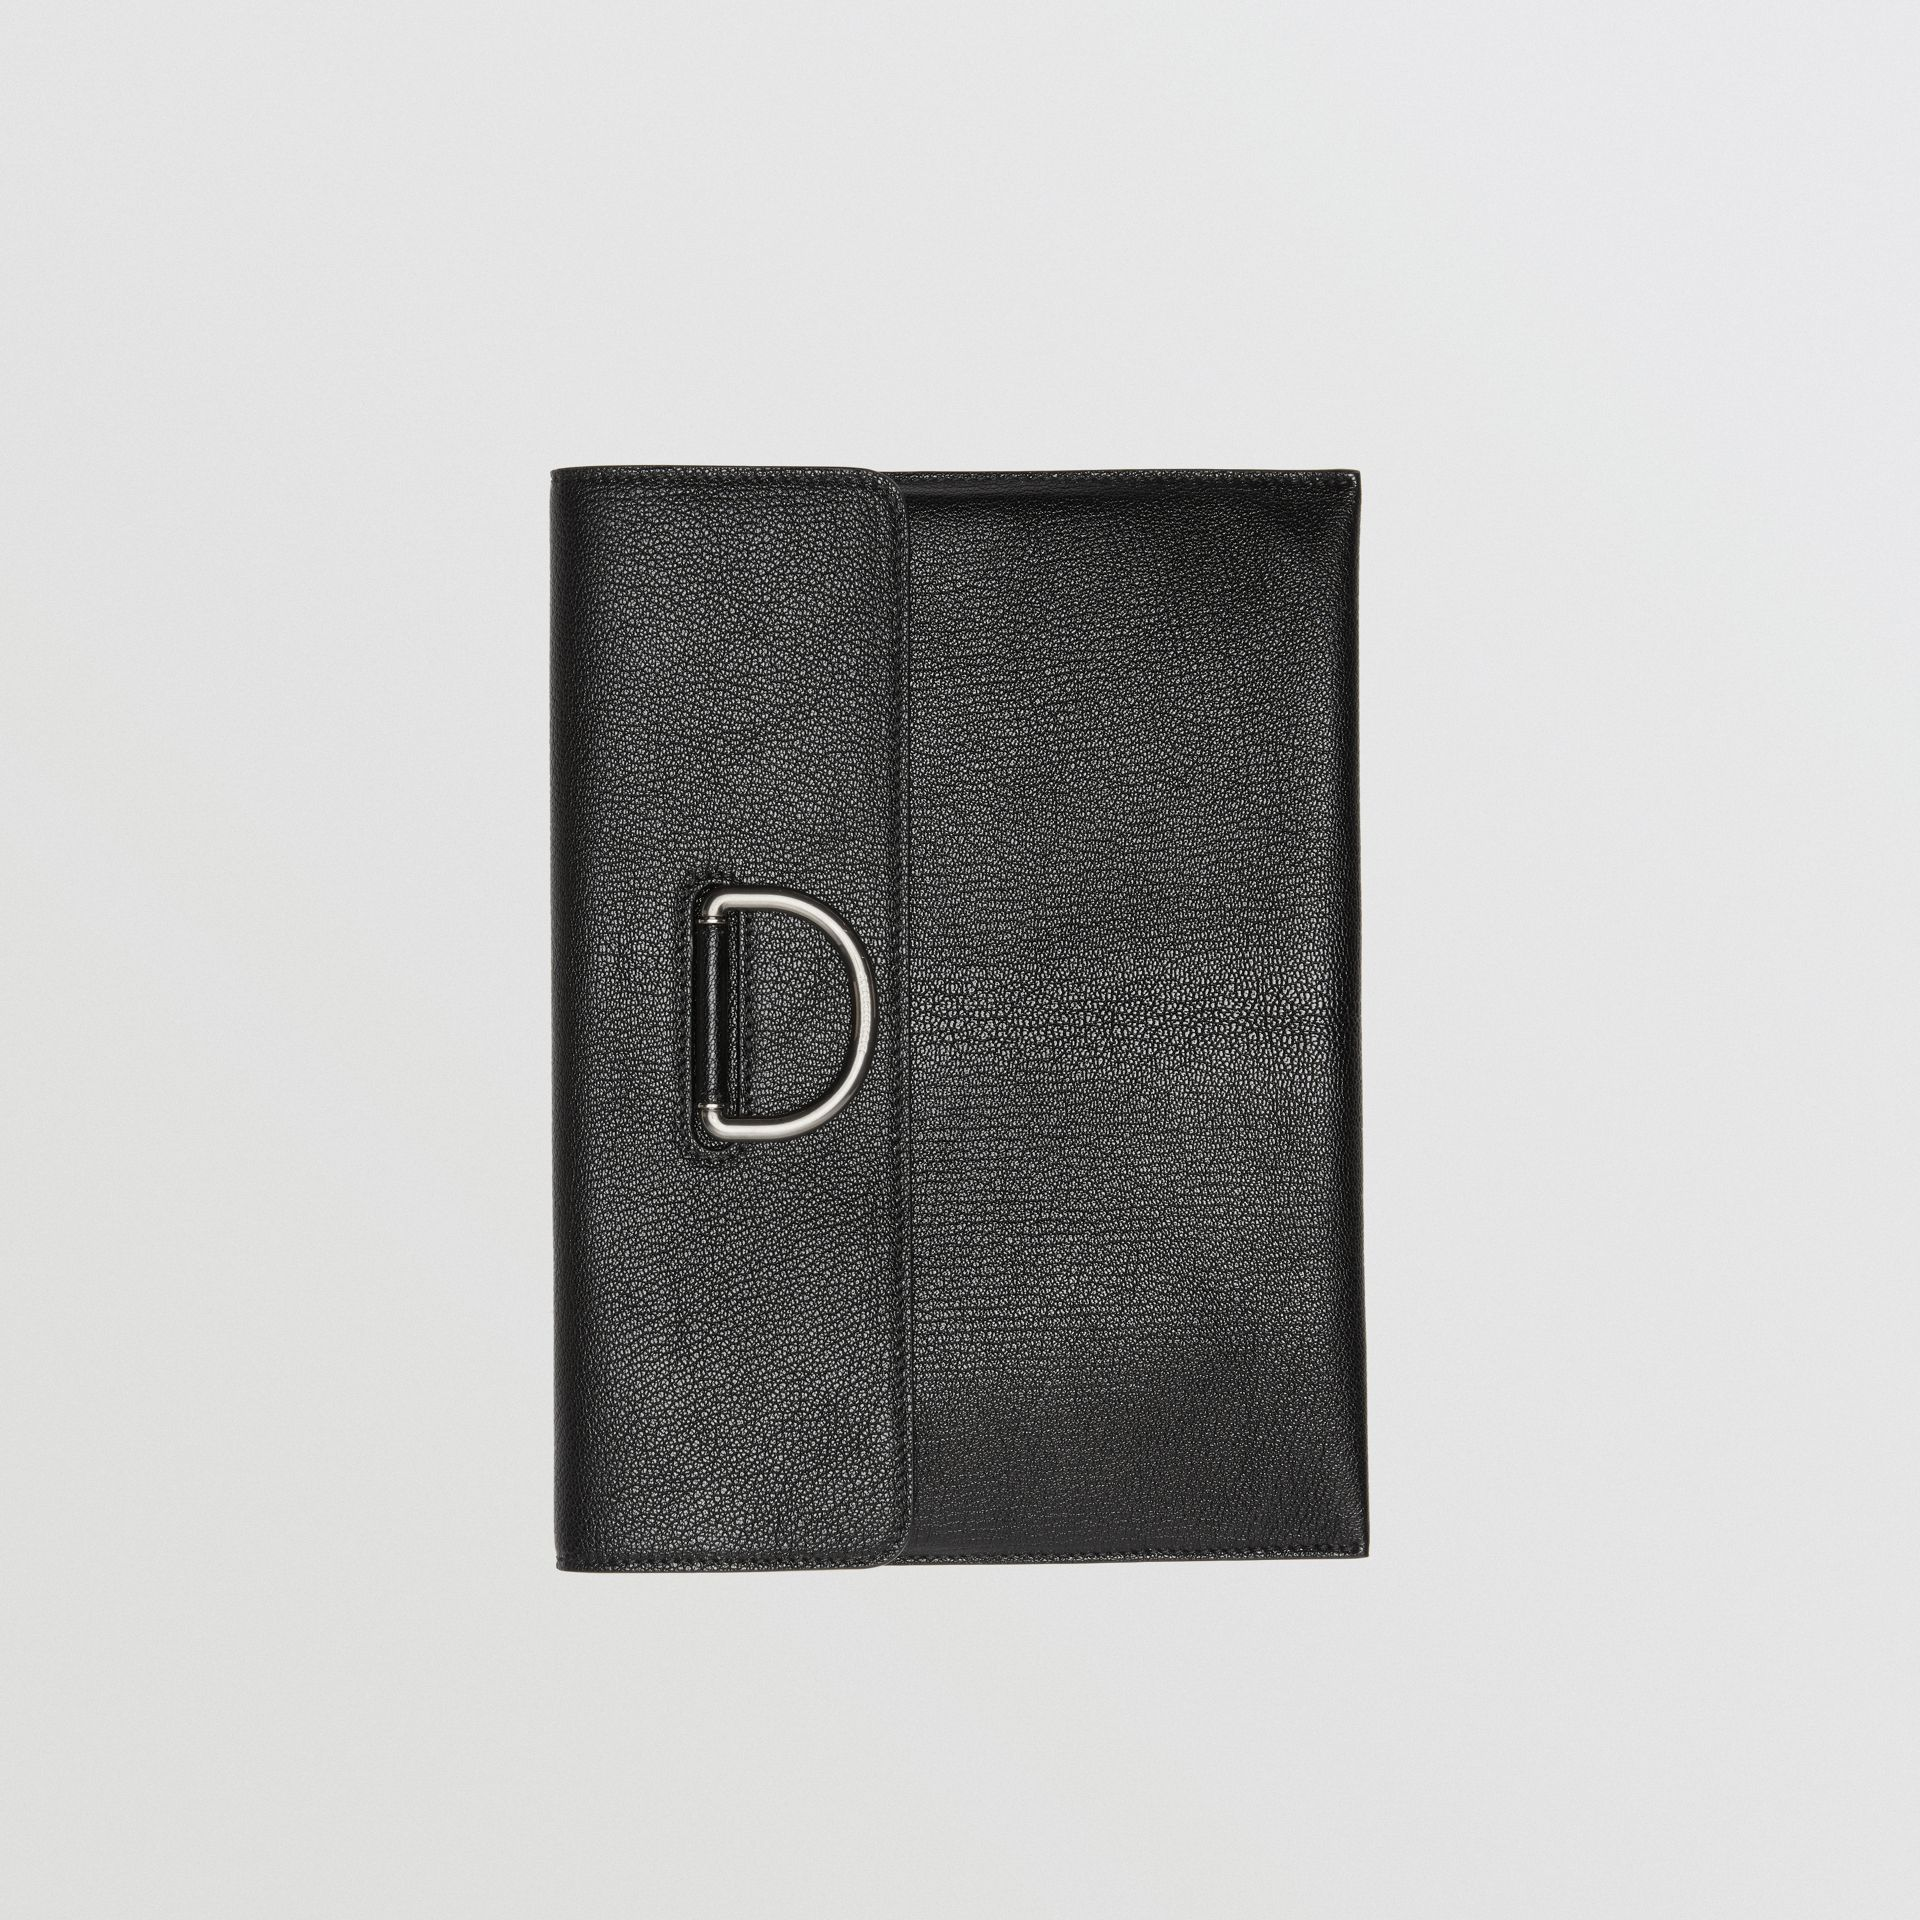 D-ring Leather Pouch in Black - Women | Burberry - gallery image 2